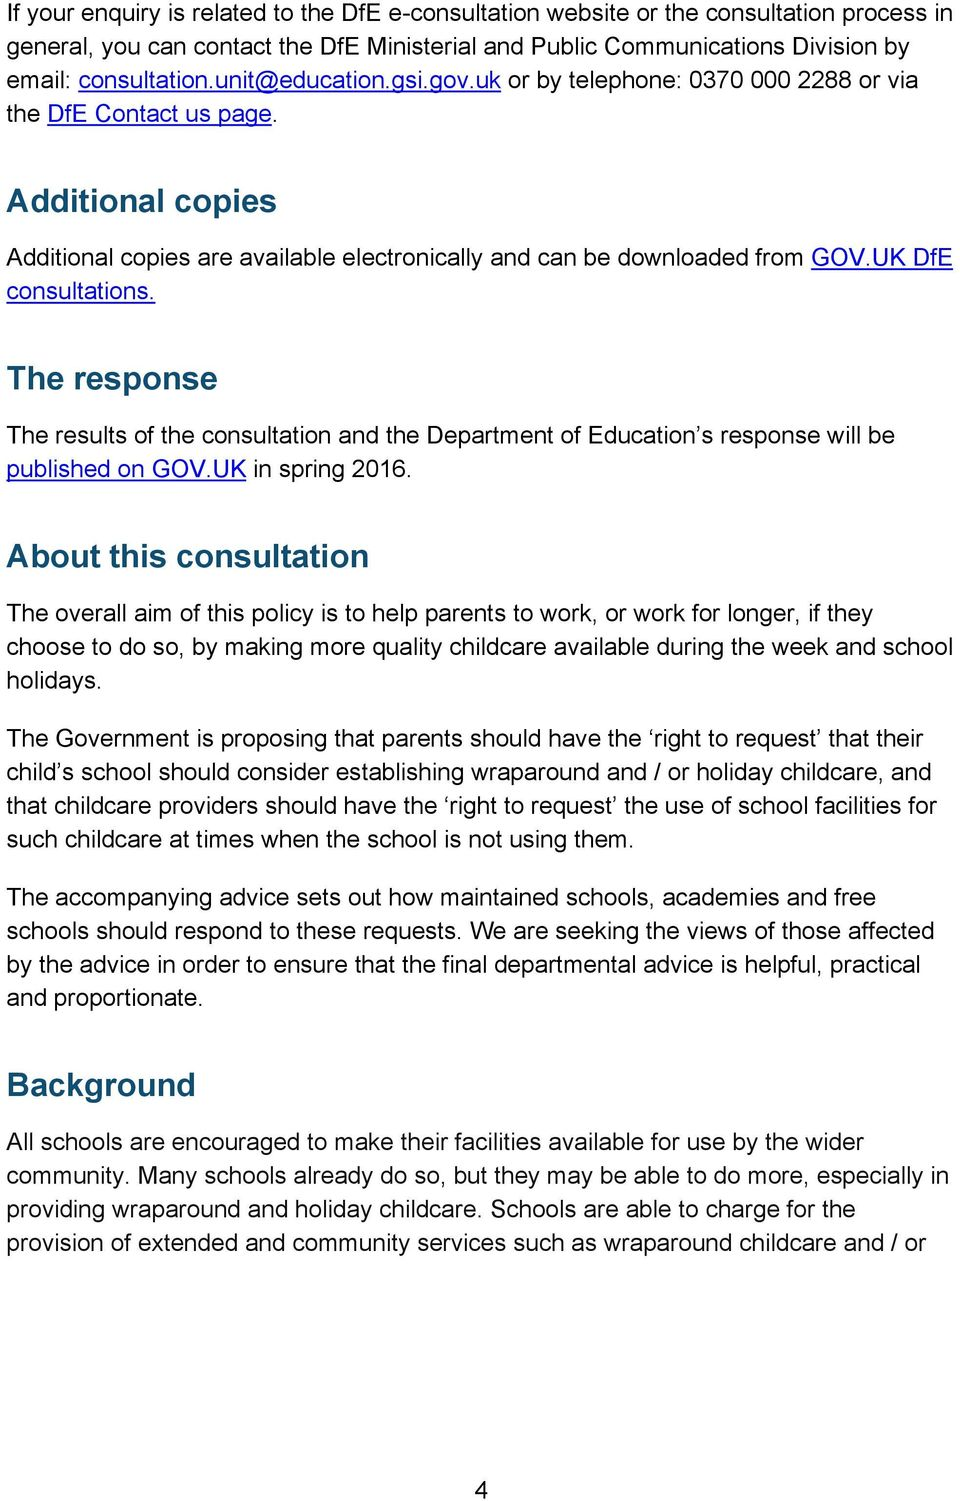 UK DfE consultations. The response The results of the consultation and the Department of Education s response will be published on GOV.UK in spring 2016.